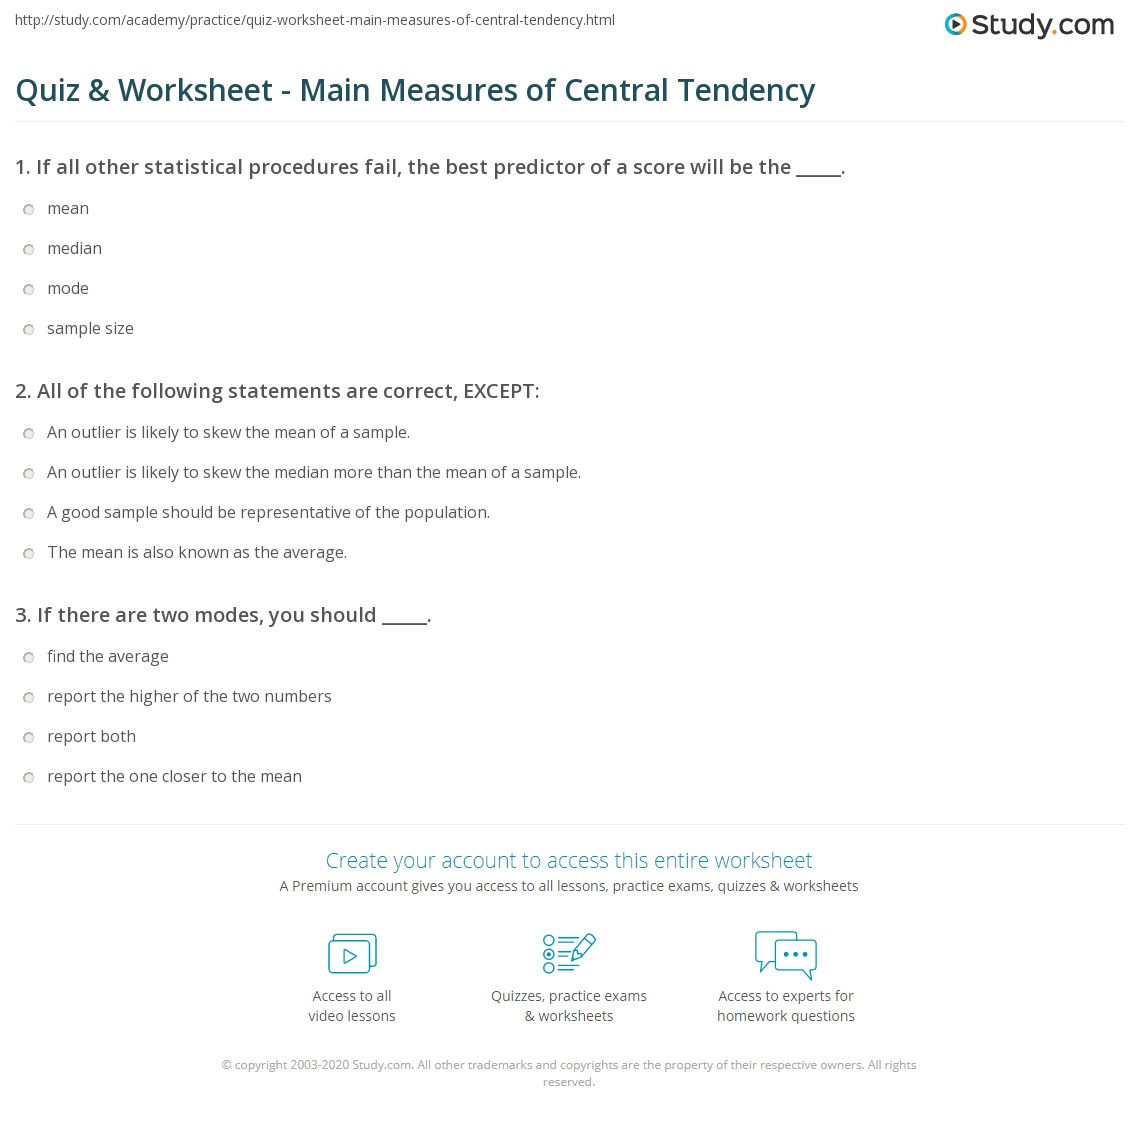 Central Tendency Worksheet 004 - Central Tendency Worksheet